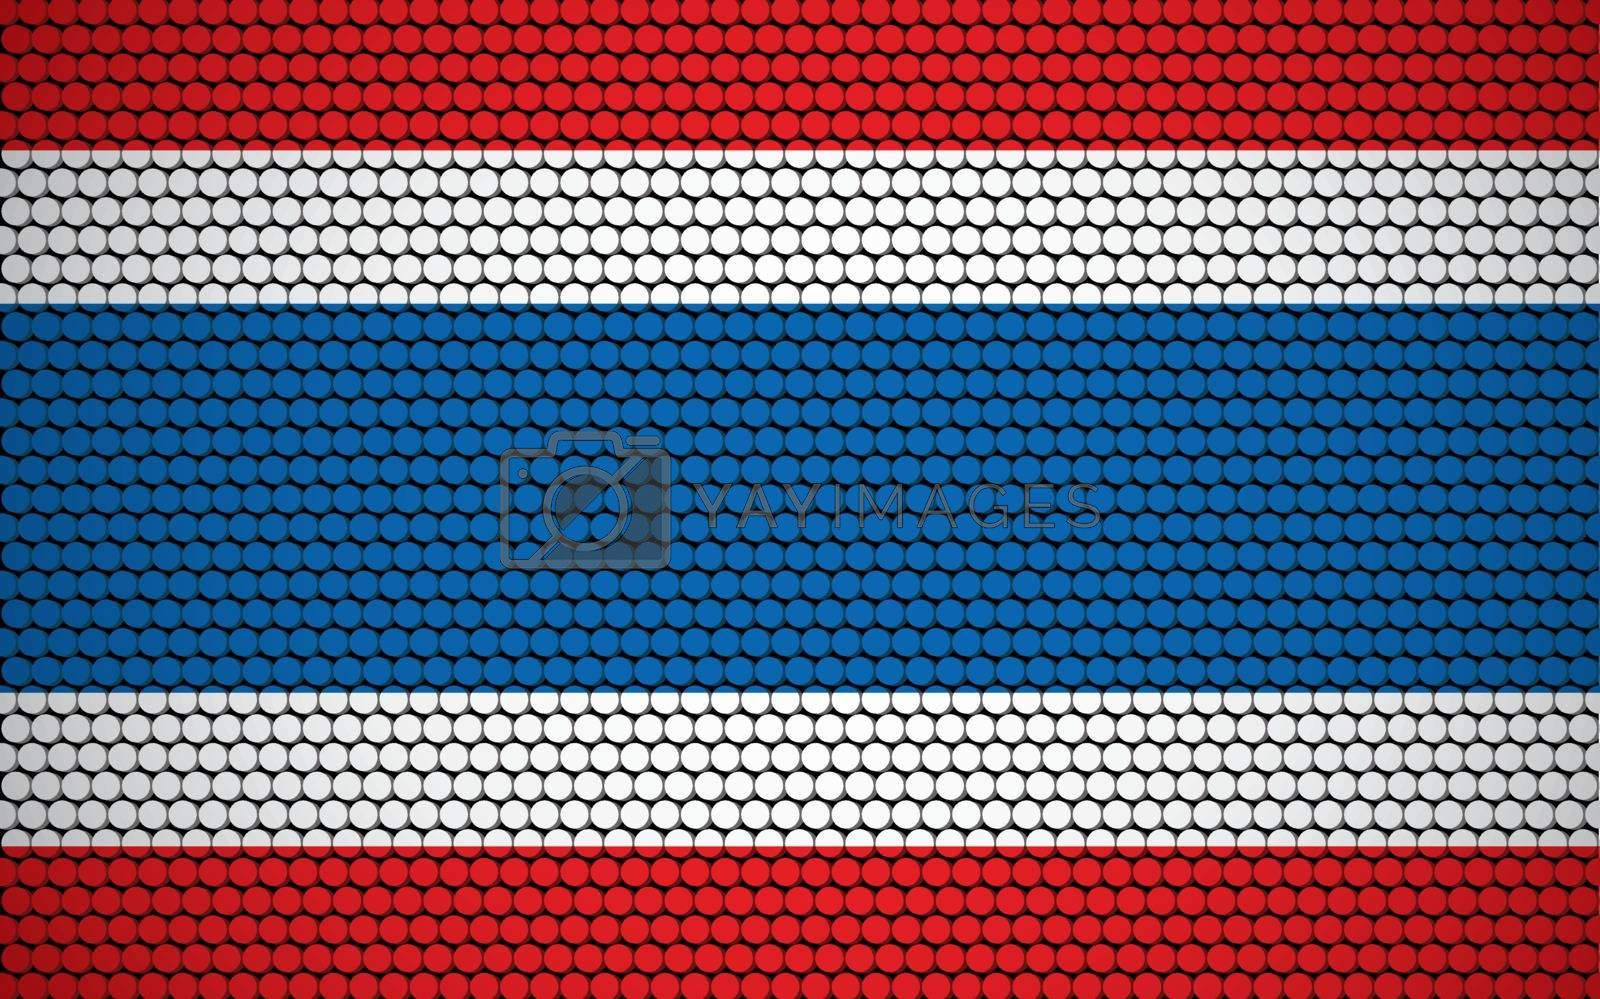 Abstract flag of Thailand made of circles. Thai flag designed with colored dots giving it a modern and futuristic abstract look.